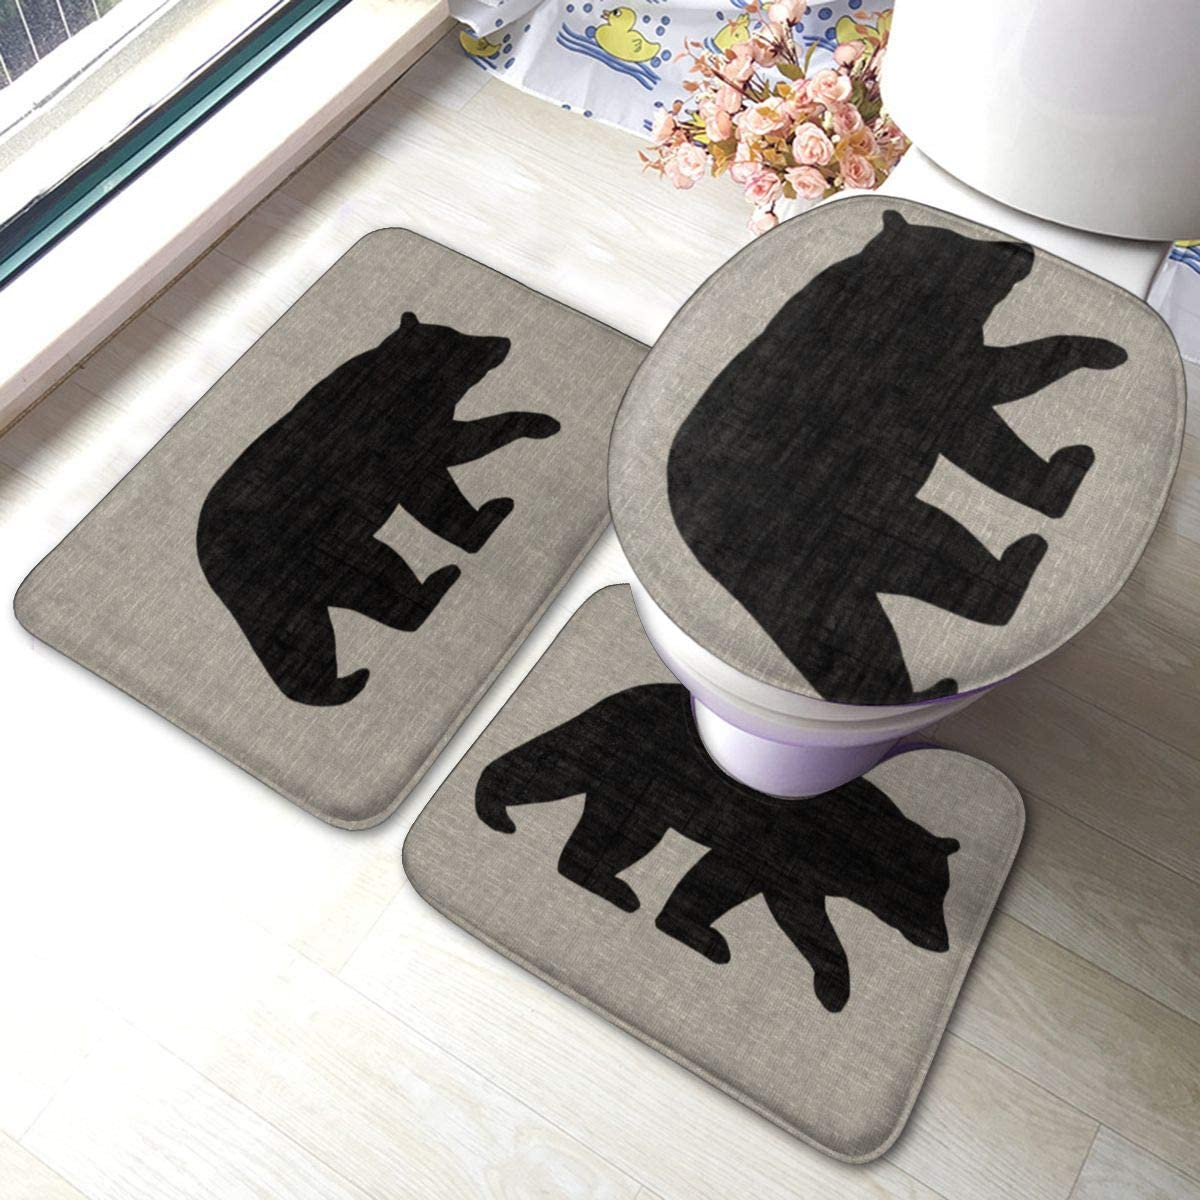 FFCrying Black Bear Silhouette Soft Flannel Bathroom Rug Mats 3 Piece Set Bath Mat + Contour Rug + Toilet Lid Cover with Non-Slip Backing Pad